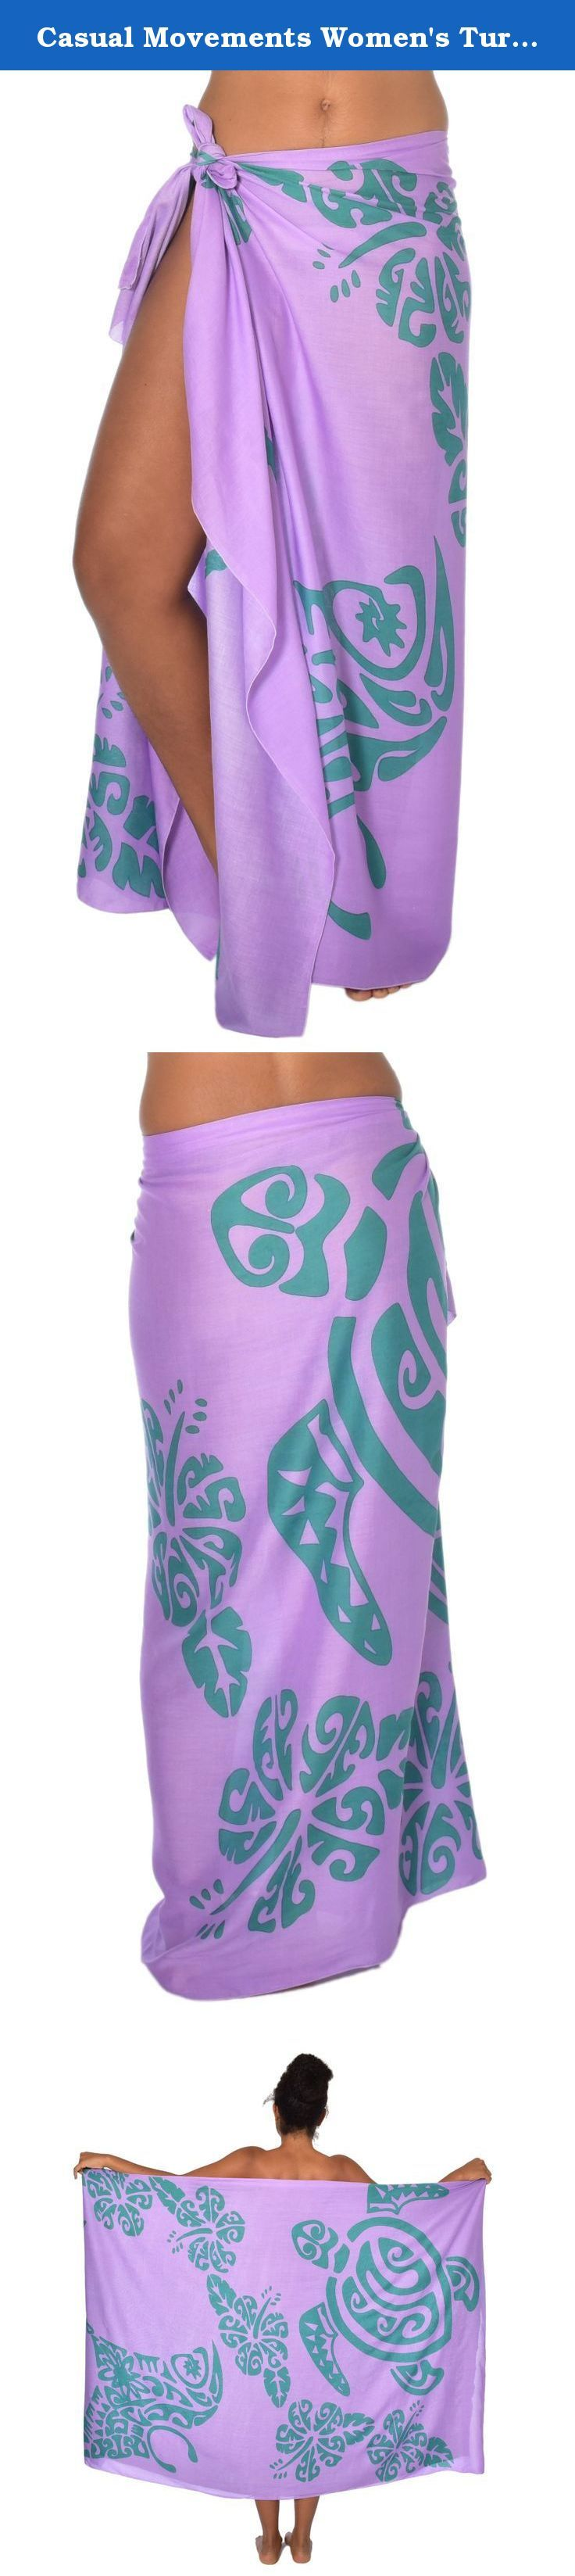 Casual Movements Women's Turtle & Stingray Tattoo Swimsuit Coverup Violet/Green. Beautiful wraps made of natural fabric in unique designs that can be worn in a variety of ways. A garment for all seasons and all body types.